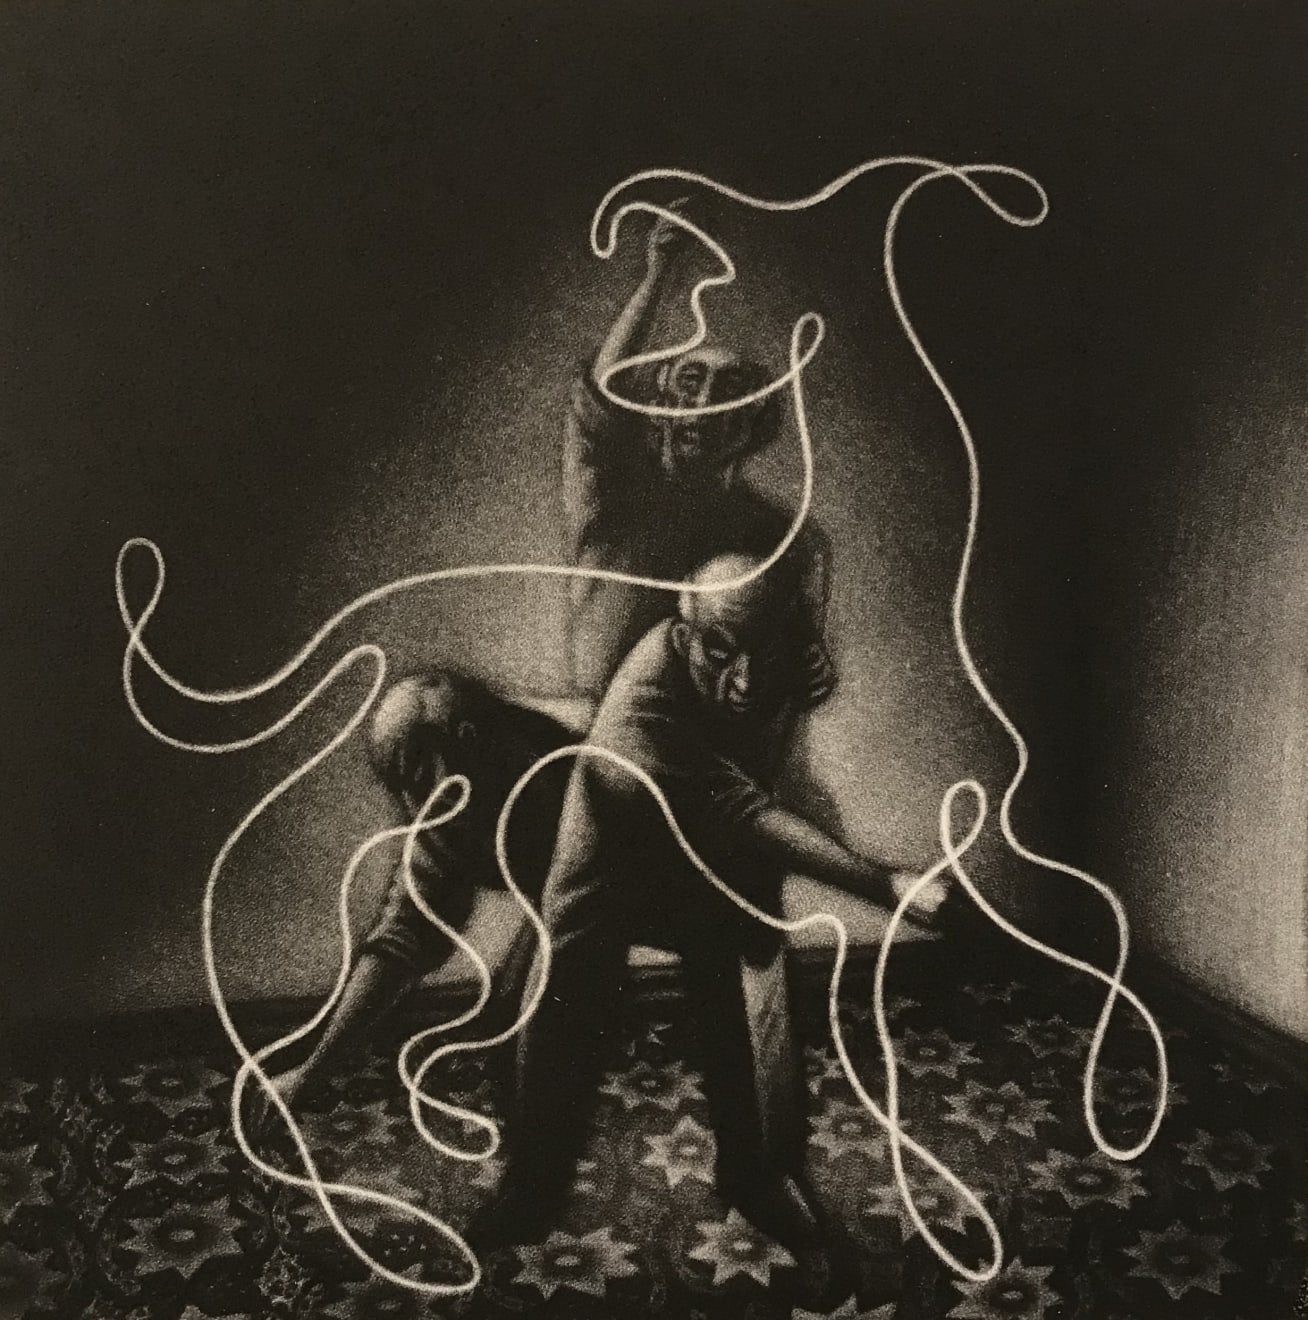 Mychael Barratt, Picasso's Dog II, 2018